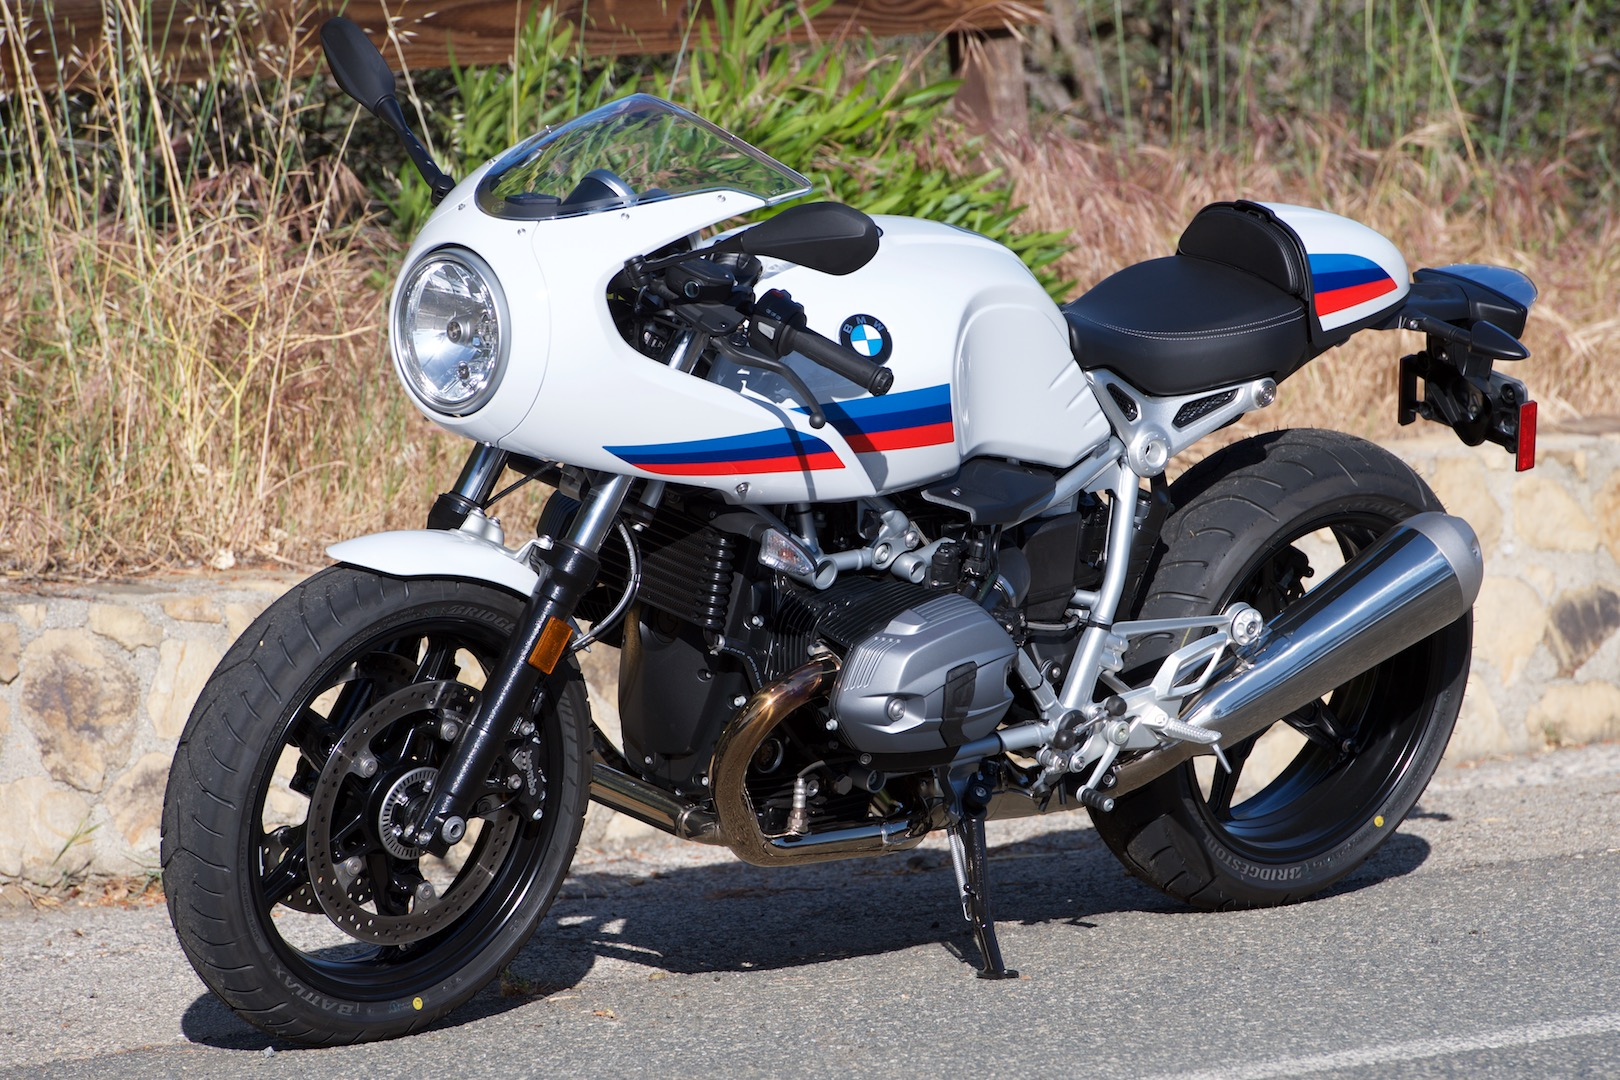 2017 BMW R nineT Racer test